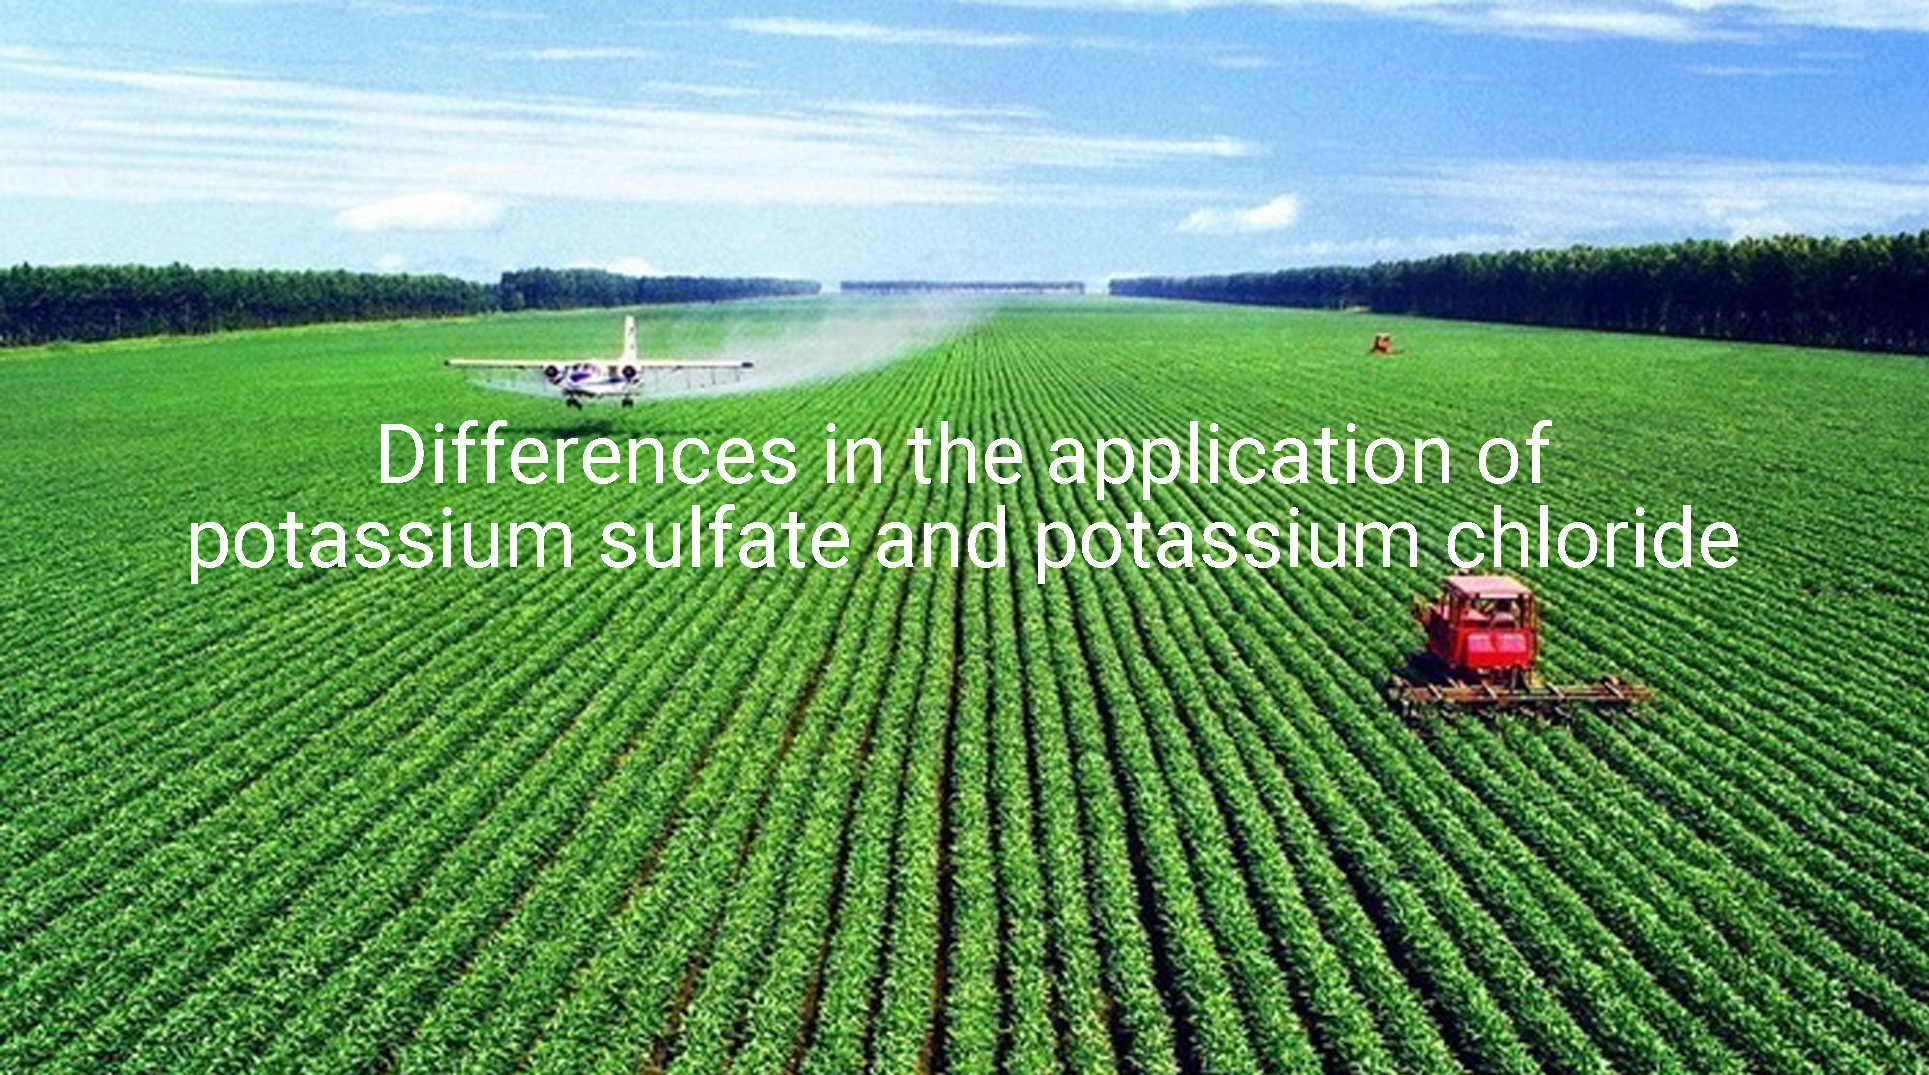 Differences in the application of potassium sulfate and potassium chloride